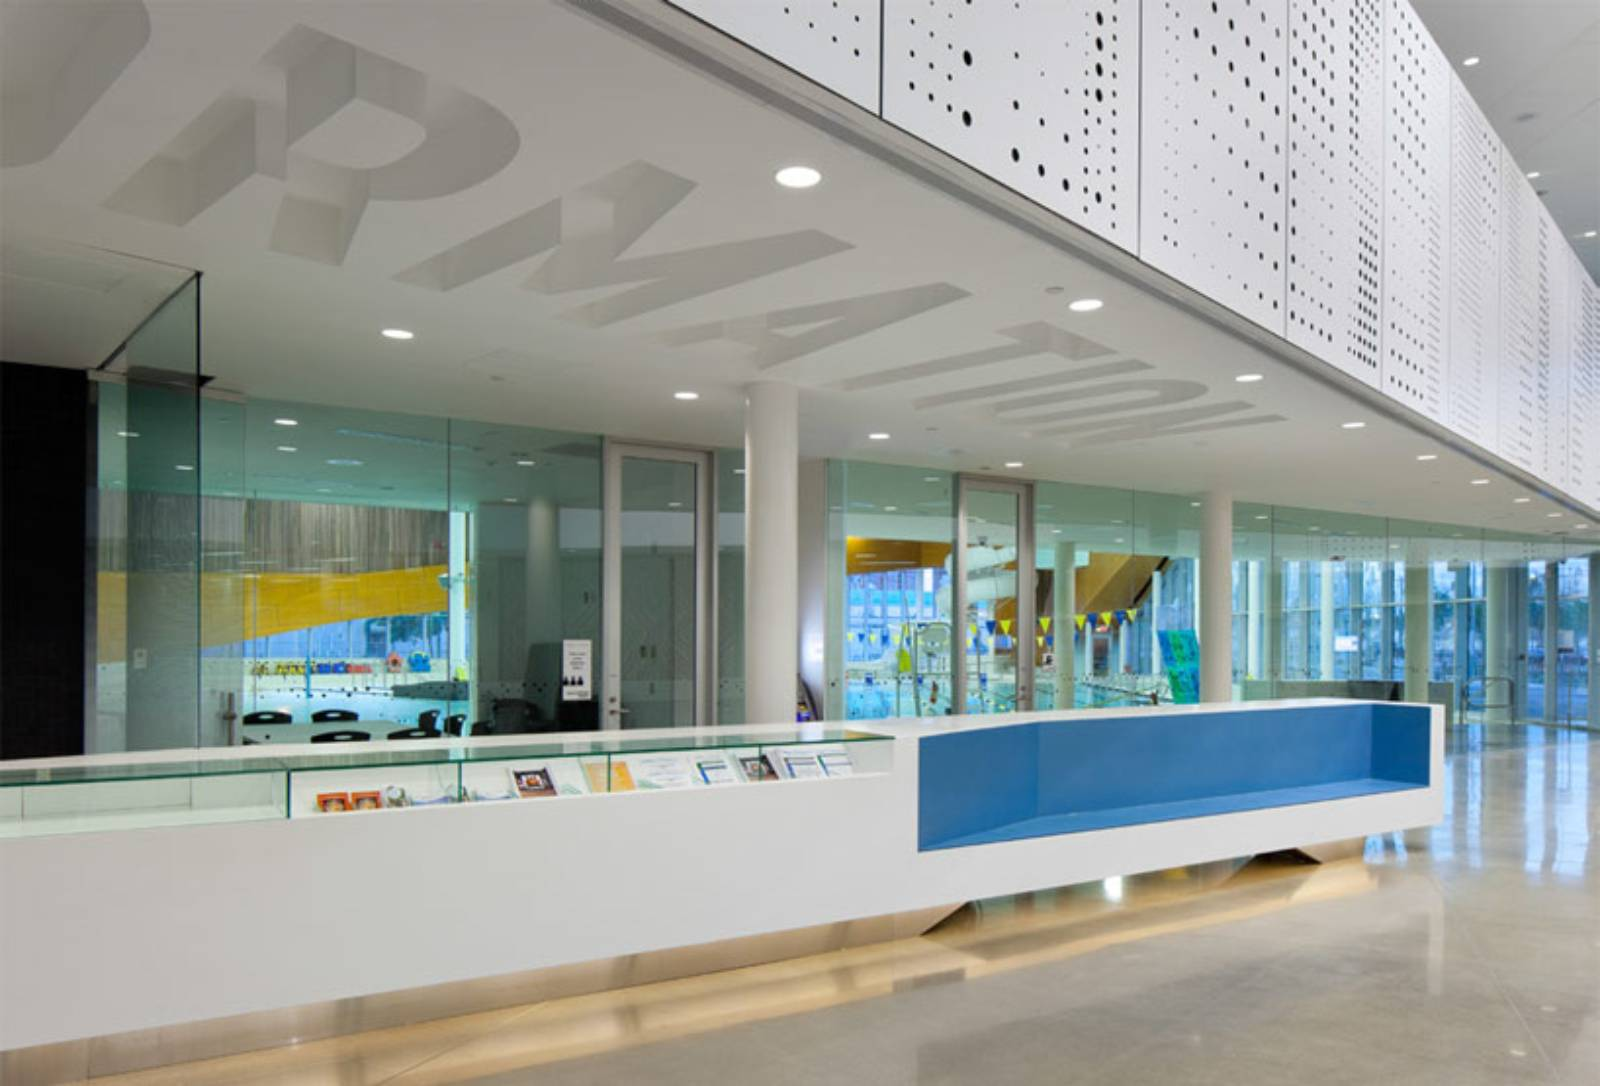 Commonwealth Community Recreation Center By Mjma A As Architecture